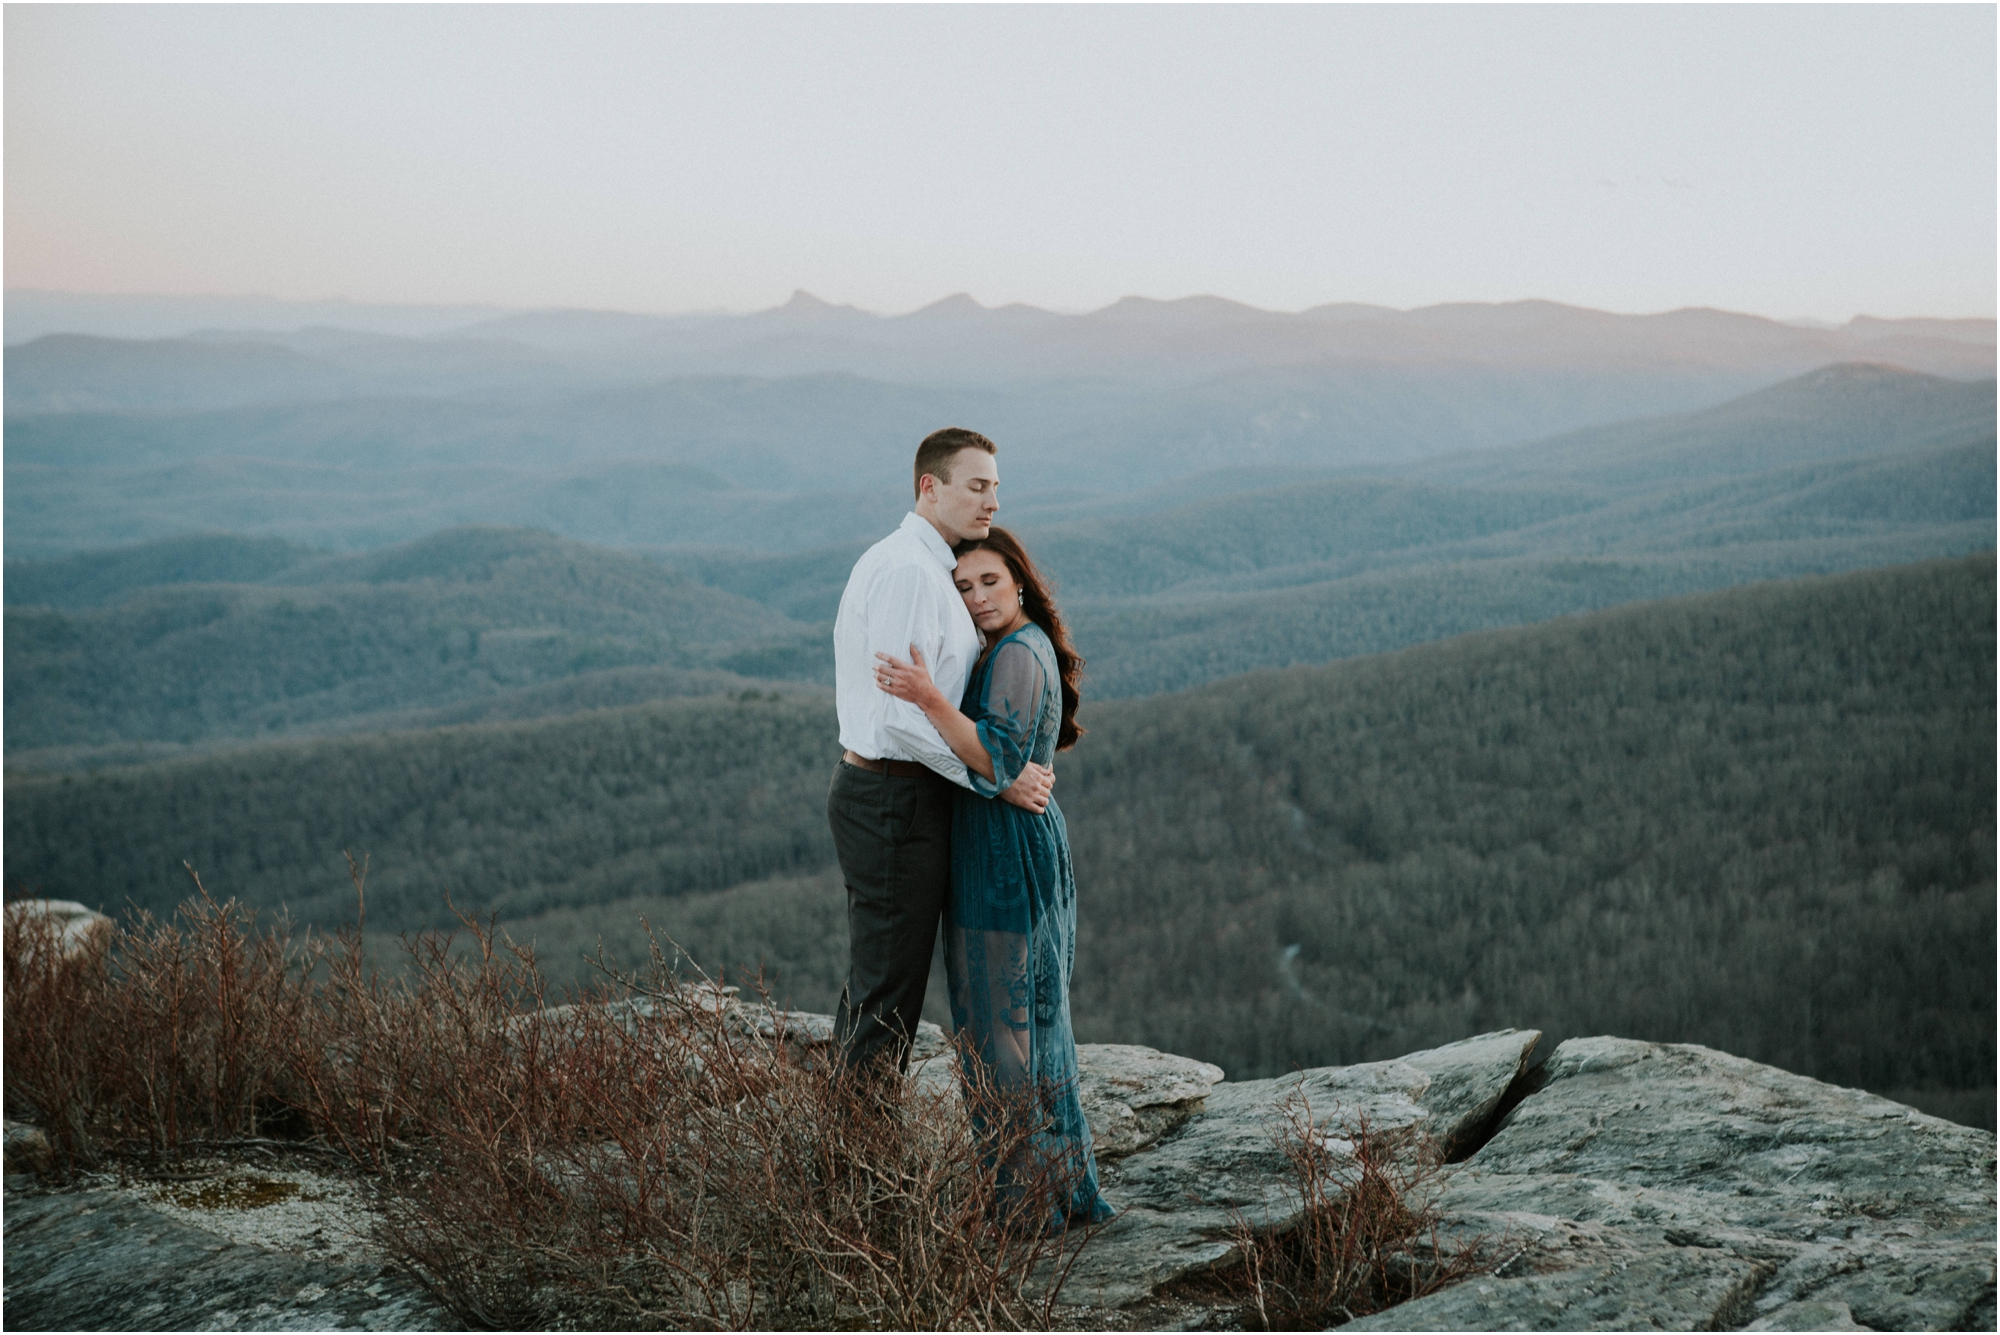 blue-ridge-parkway-engagement-session-north-carolina-boone-blowing-rock-northeast-tennessee-katy-sergent-photography_0029.jpg